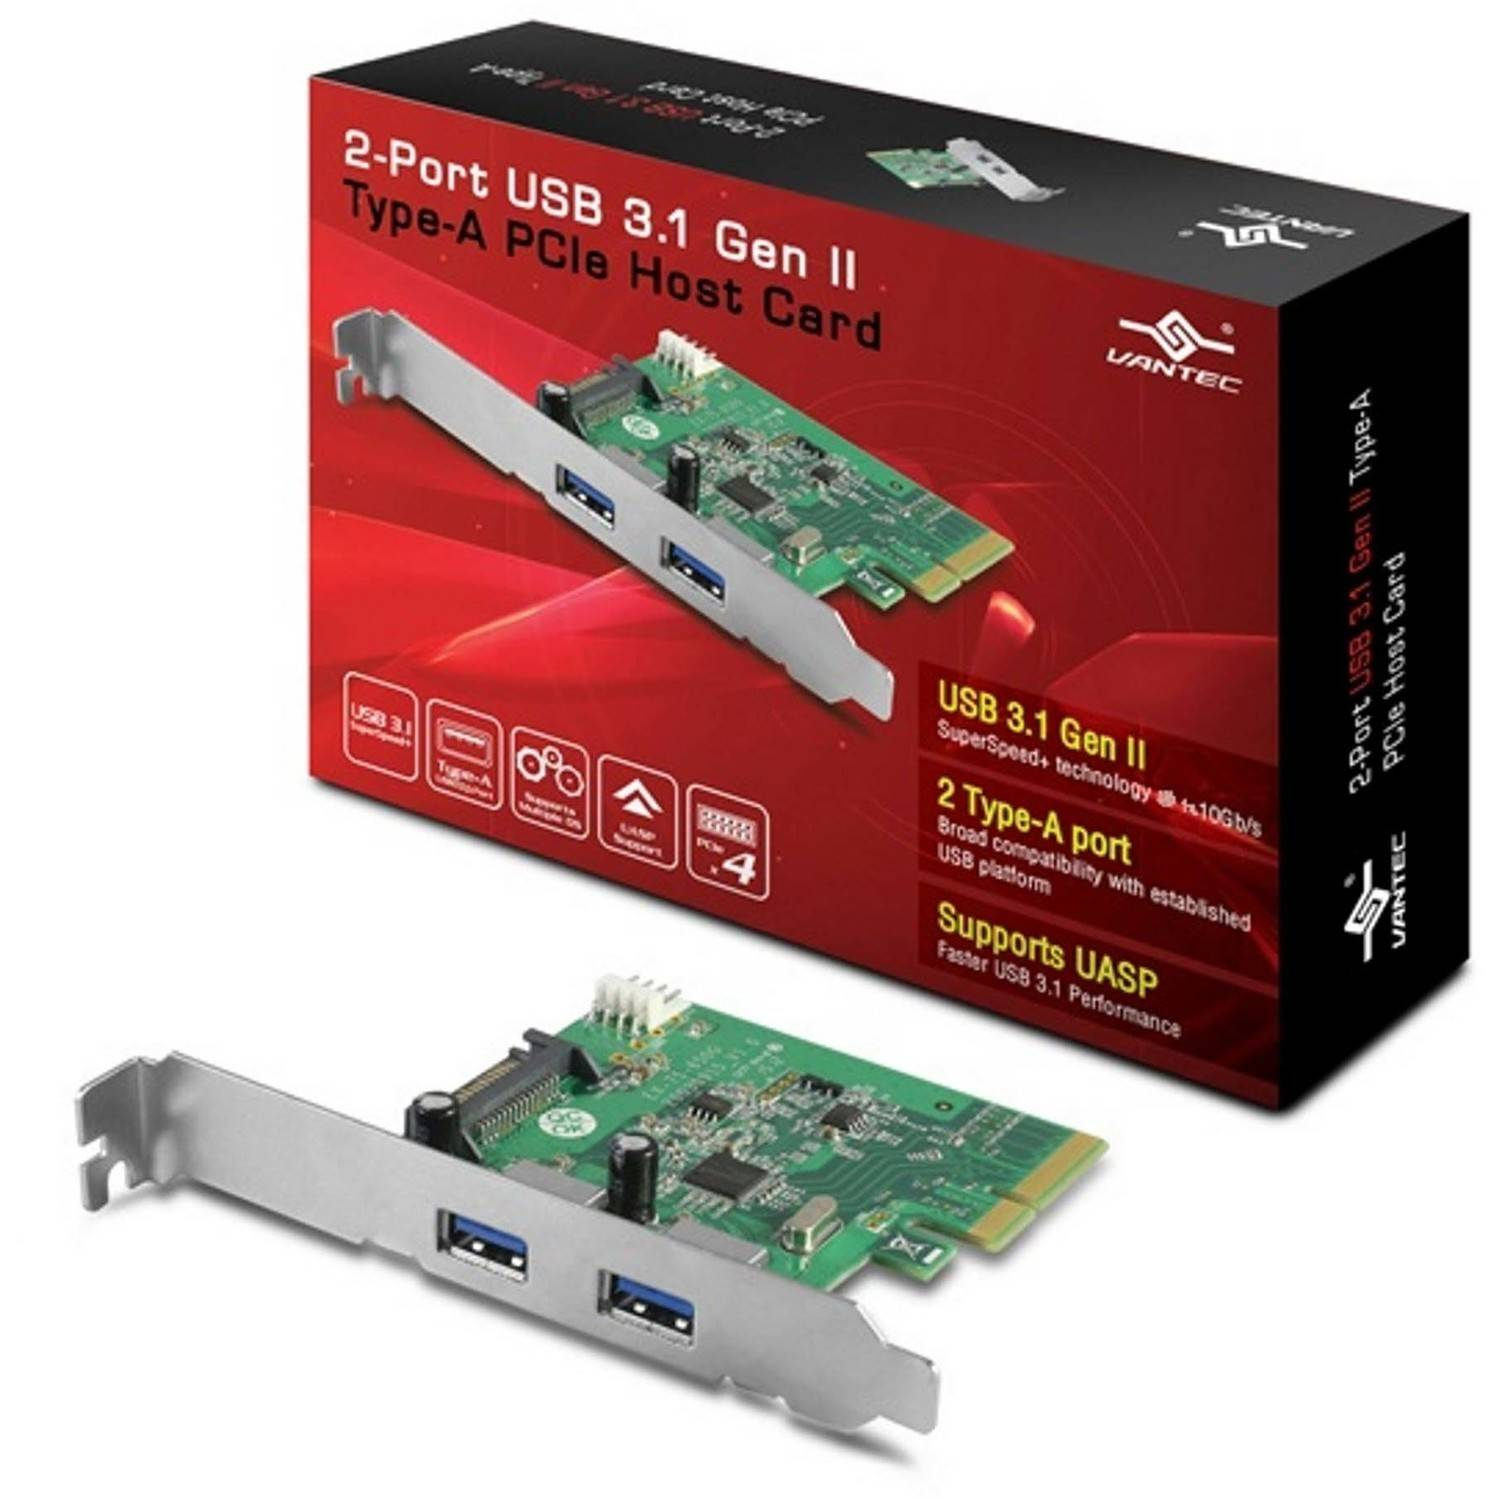 Vantec UGT-PC370A 2-Port USB 3.1 Gen II Type-A PCIe Host Card, Silver